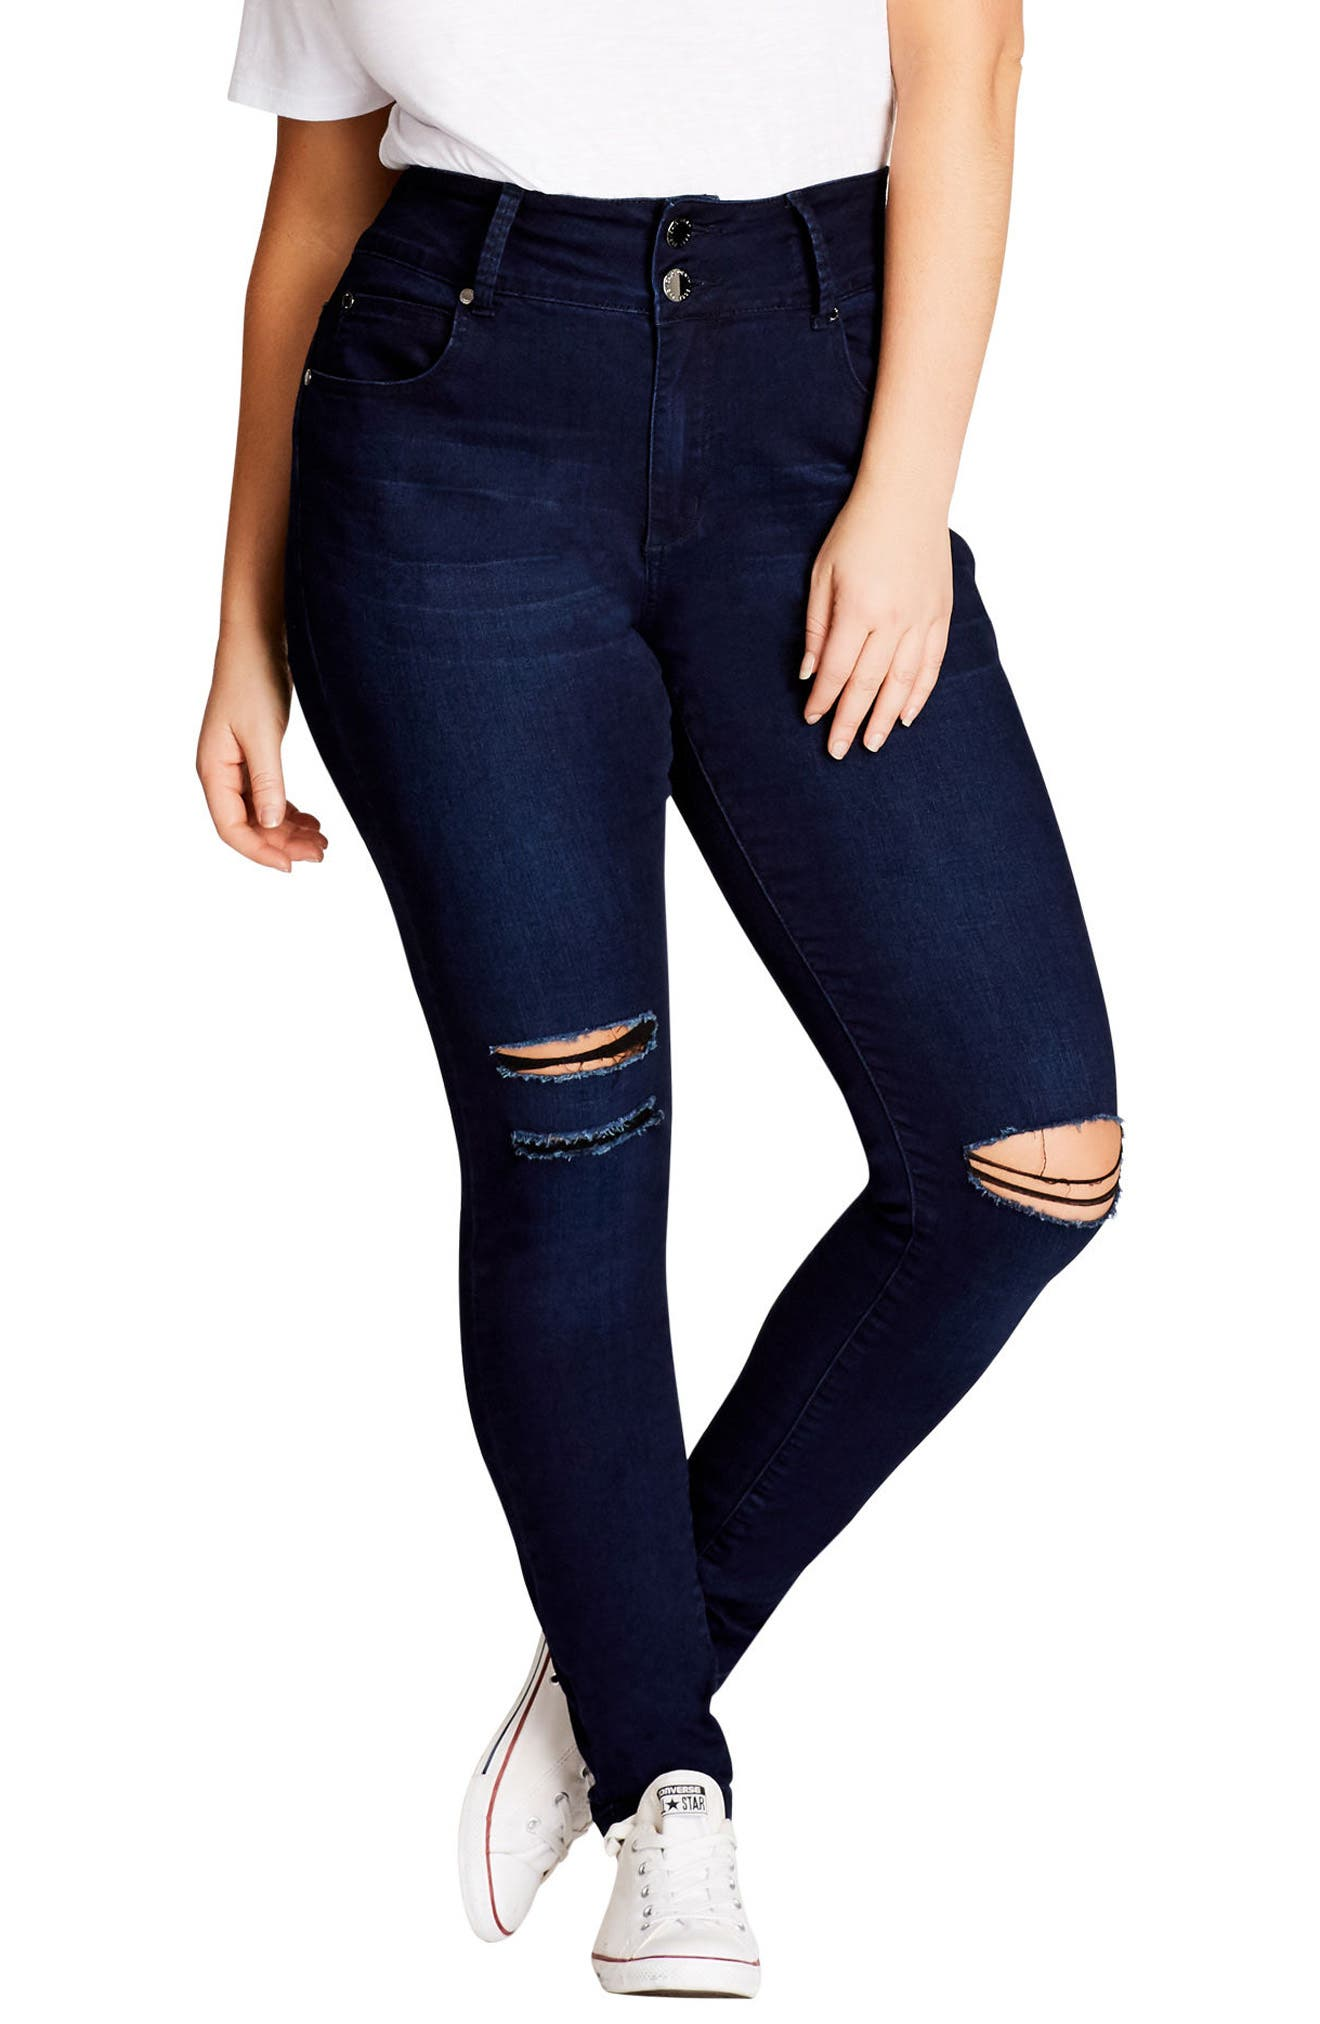 City Chic Harley Ripped High Rise Skinny Jeans (Plus Size)